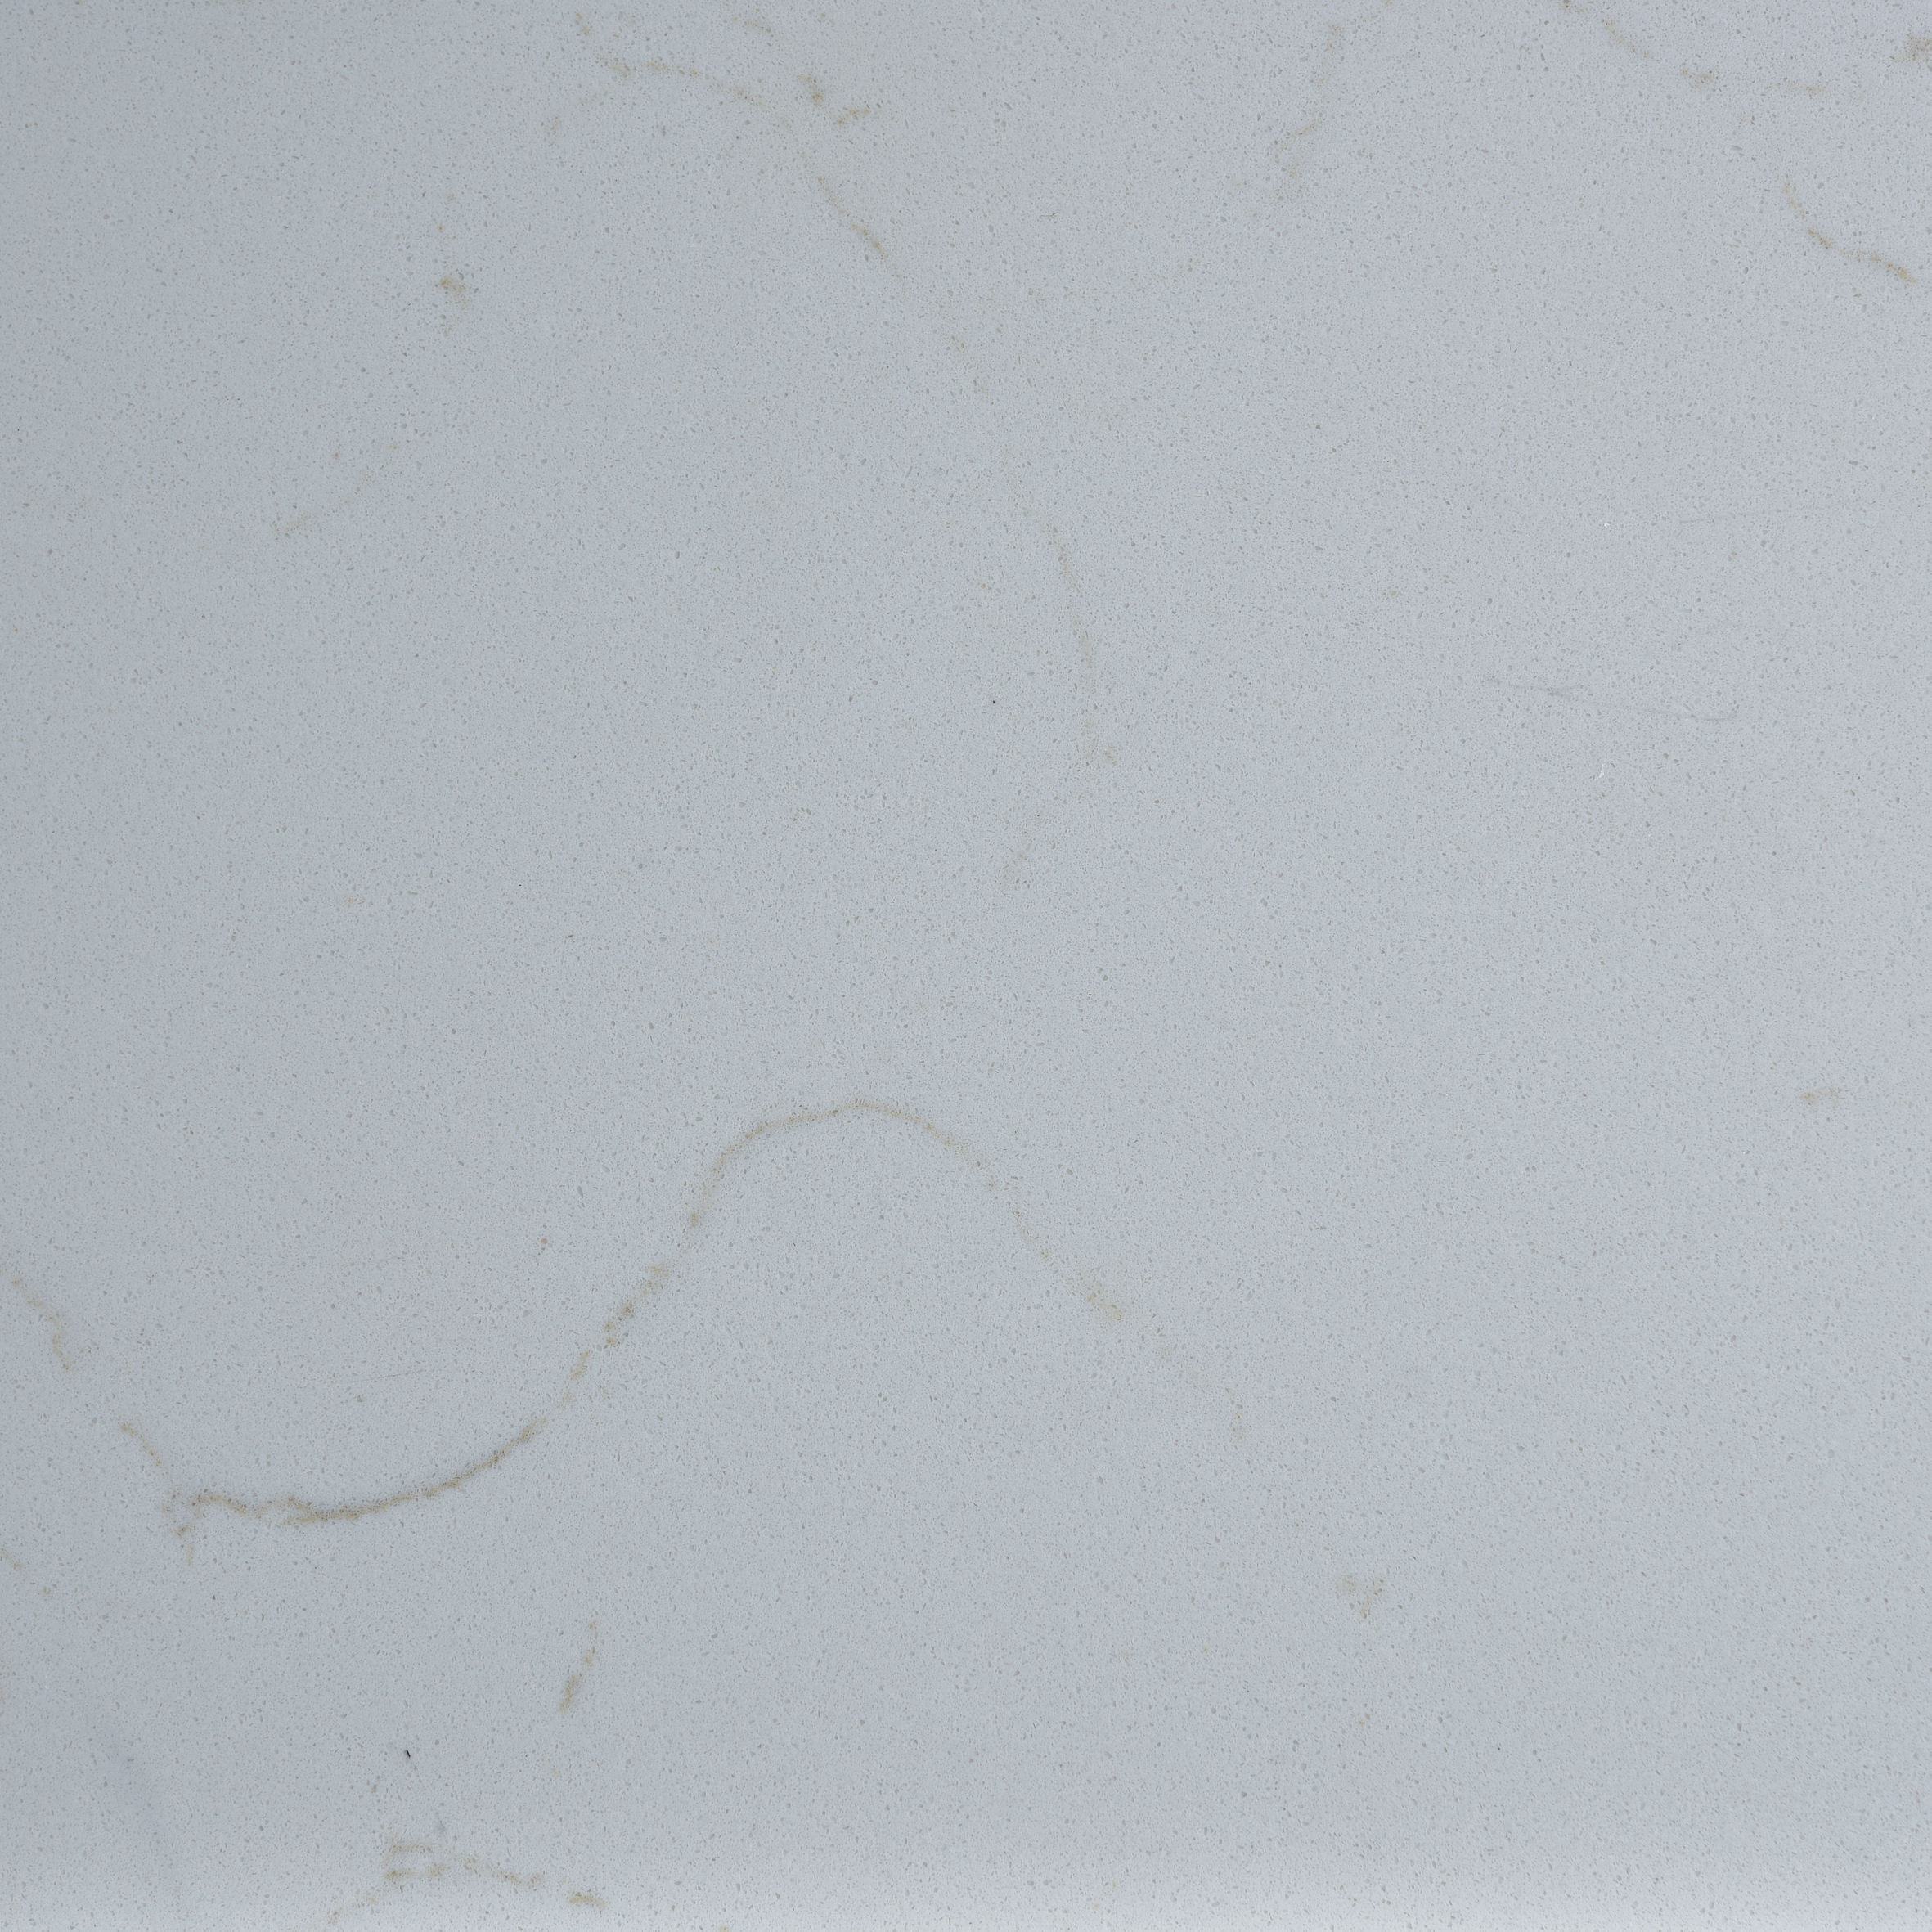 Quartz P1541 sample 6 inch x 6 inch